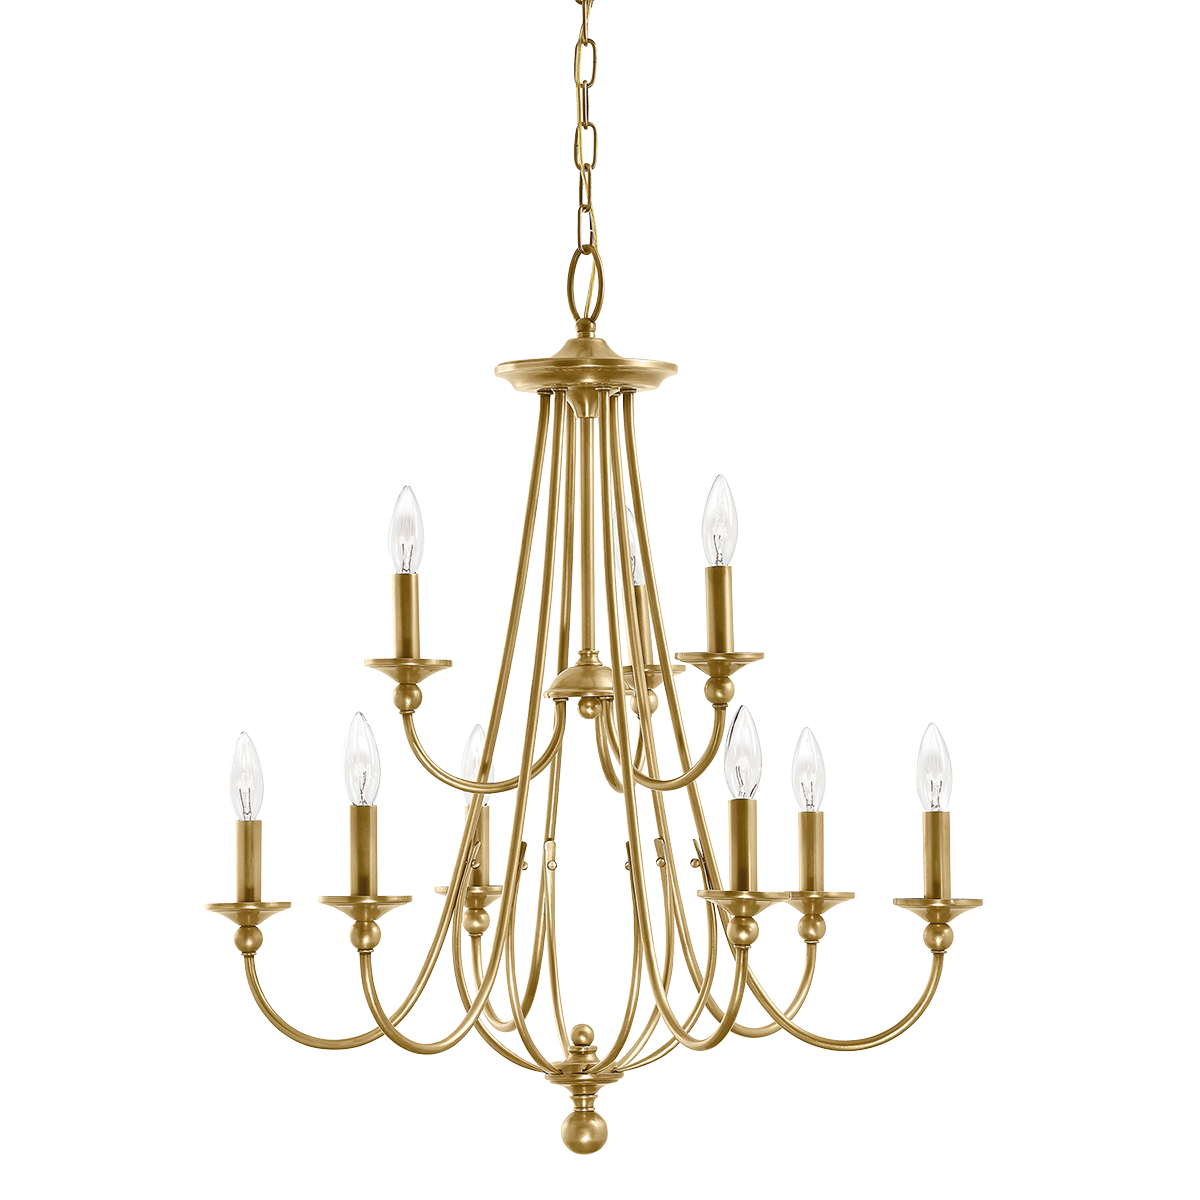 Option for dining area kichler camella 9 light chandelier 34695 shop kichler lighting 2 tier natural brass chandelier at lowes canada find our selection of chandeliers at the lowest price guaranteed with price match aloadofball Image collections